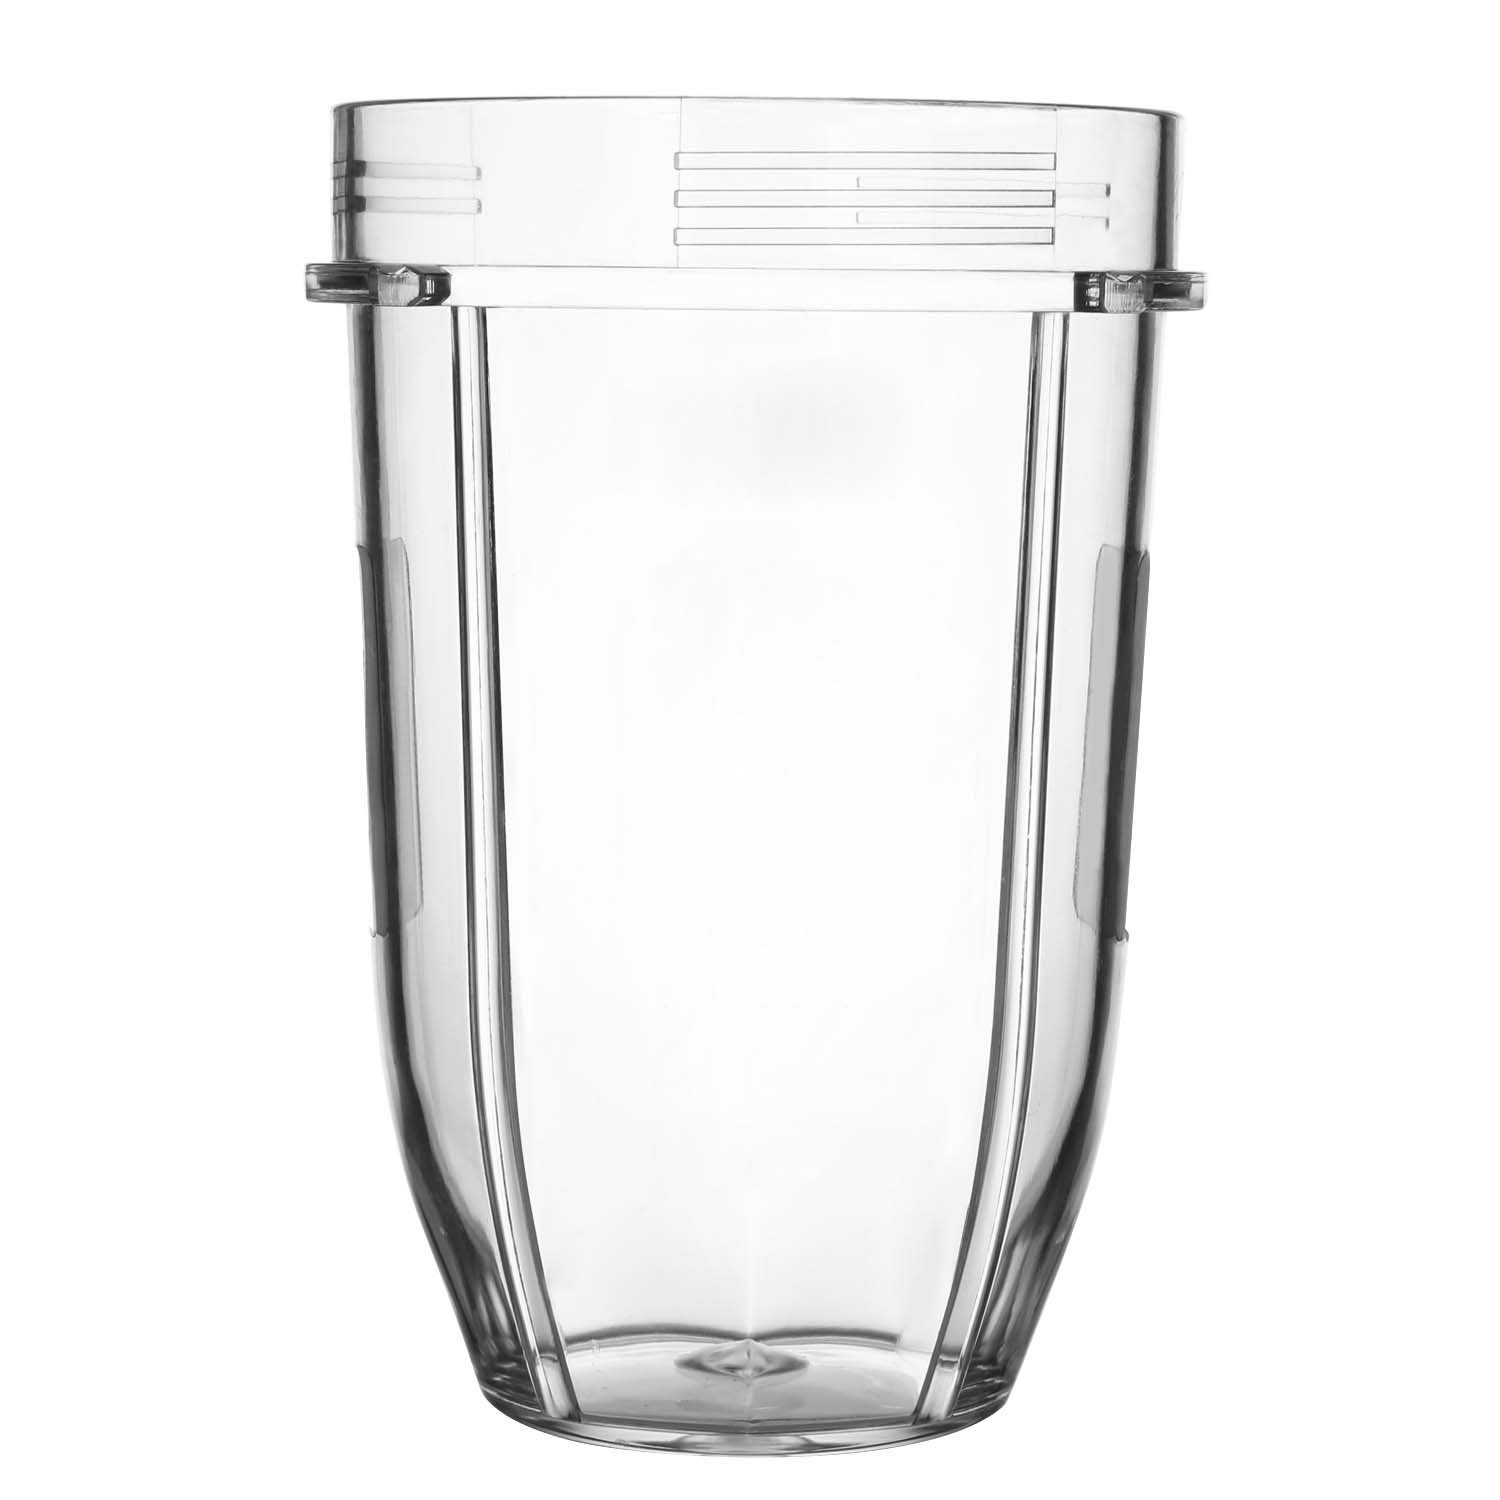 Regular 24oz. Replacement Cup Mug Part for Nutri Ninja 900w 1000w 1500w Auto-iQ Blender Juicer Mixer YESURPRISE